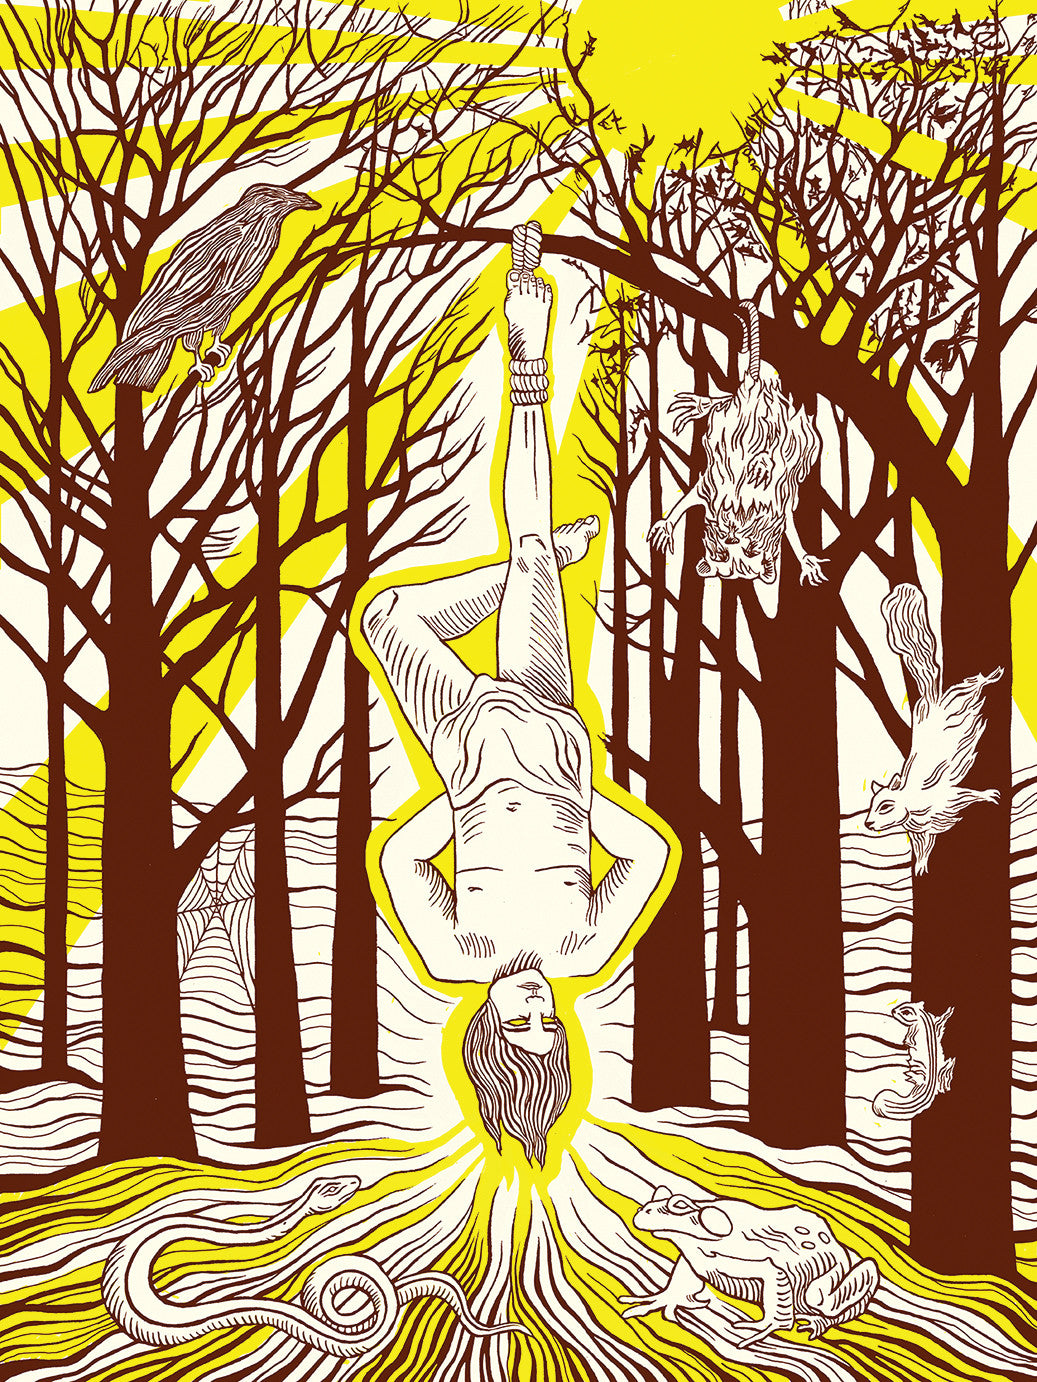 HANGED MAN TAROT SCREEN PRINT by KYLA QUIGLEY